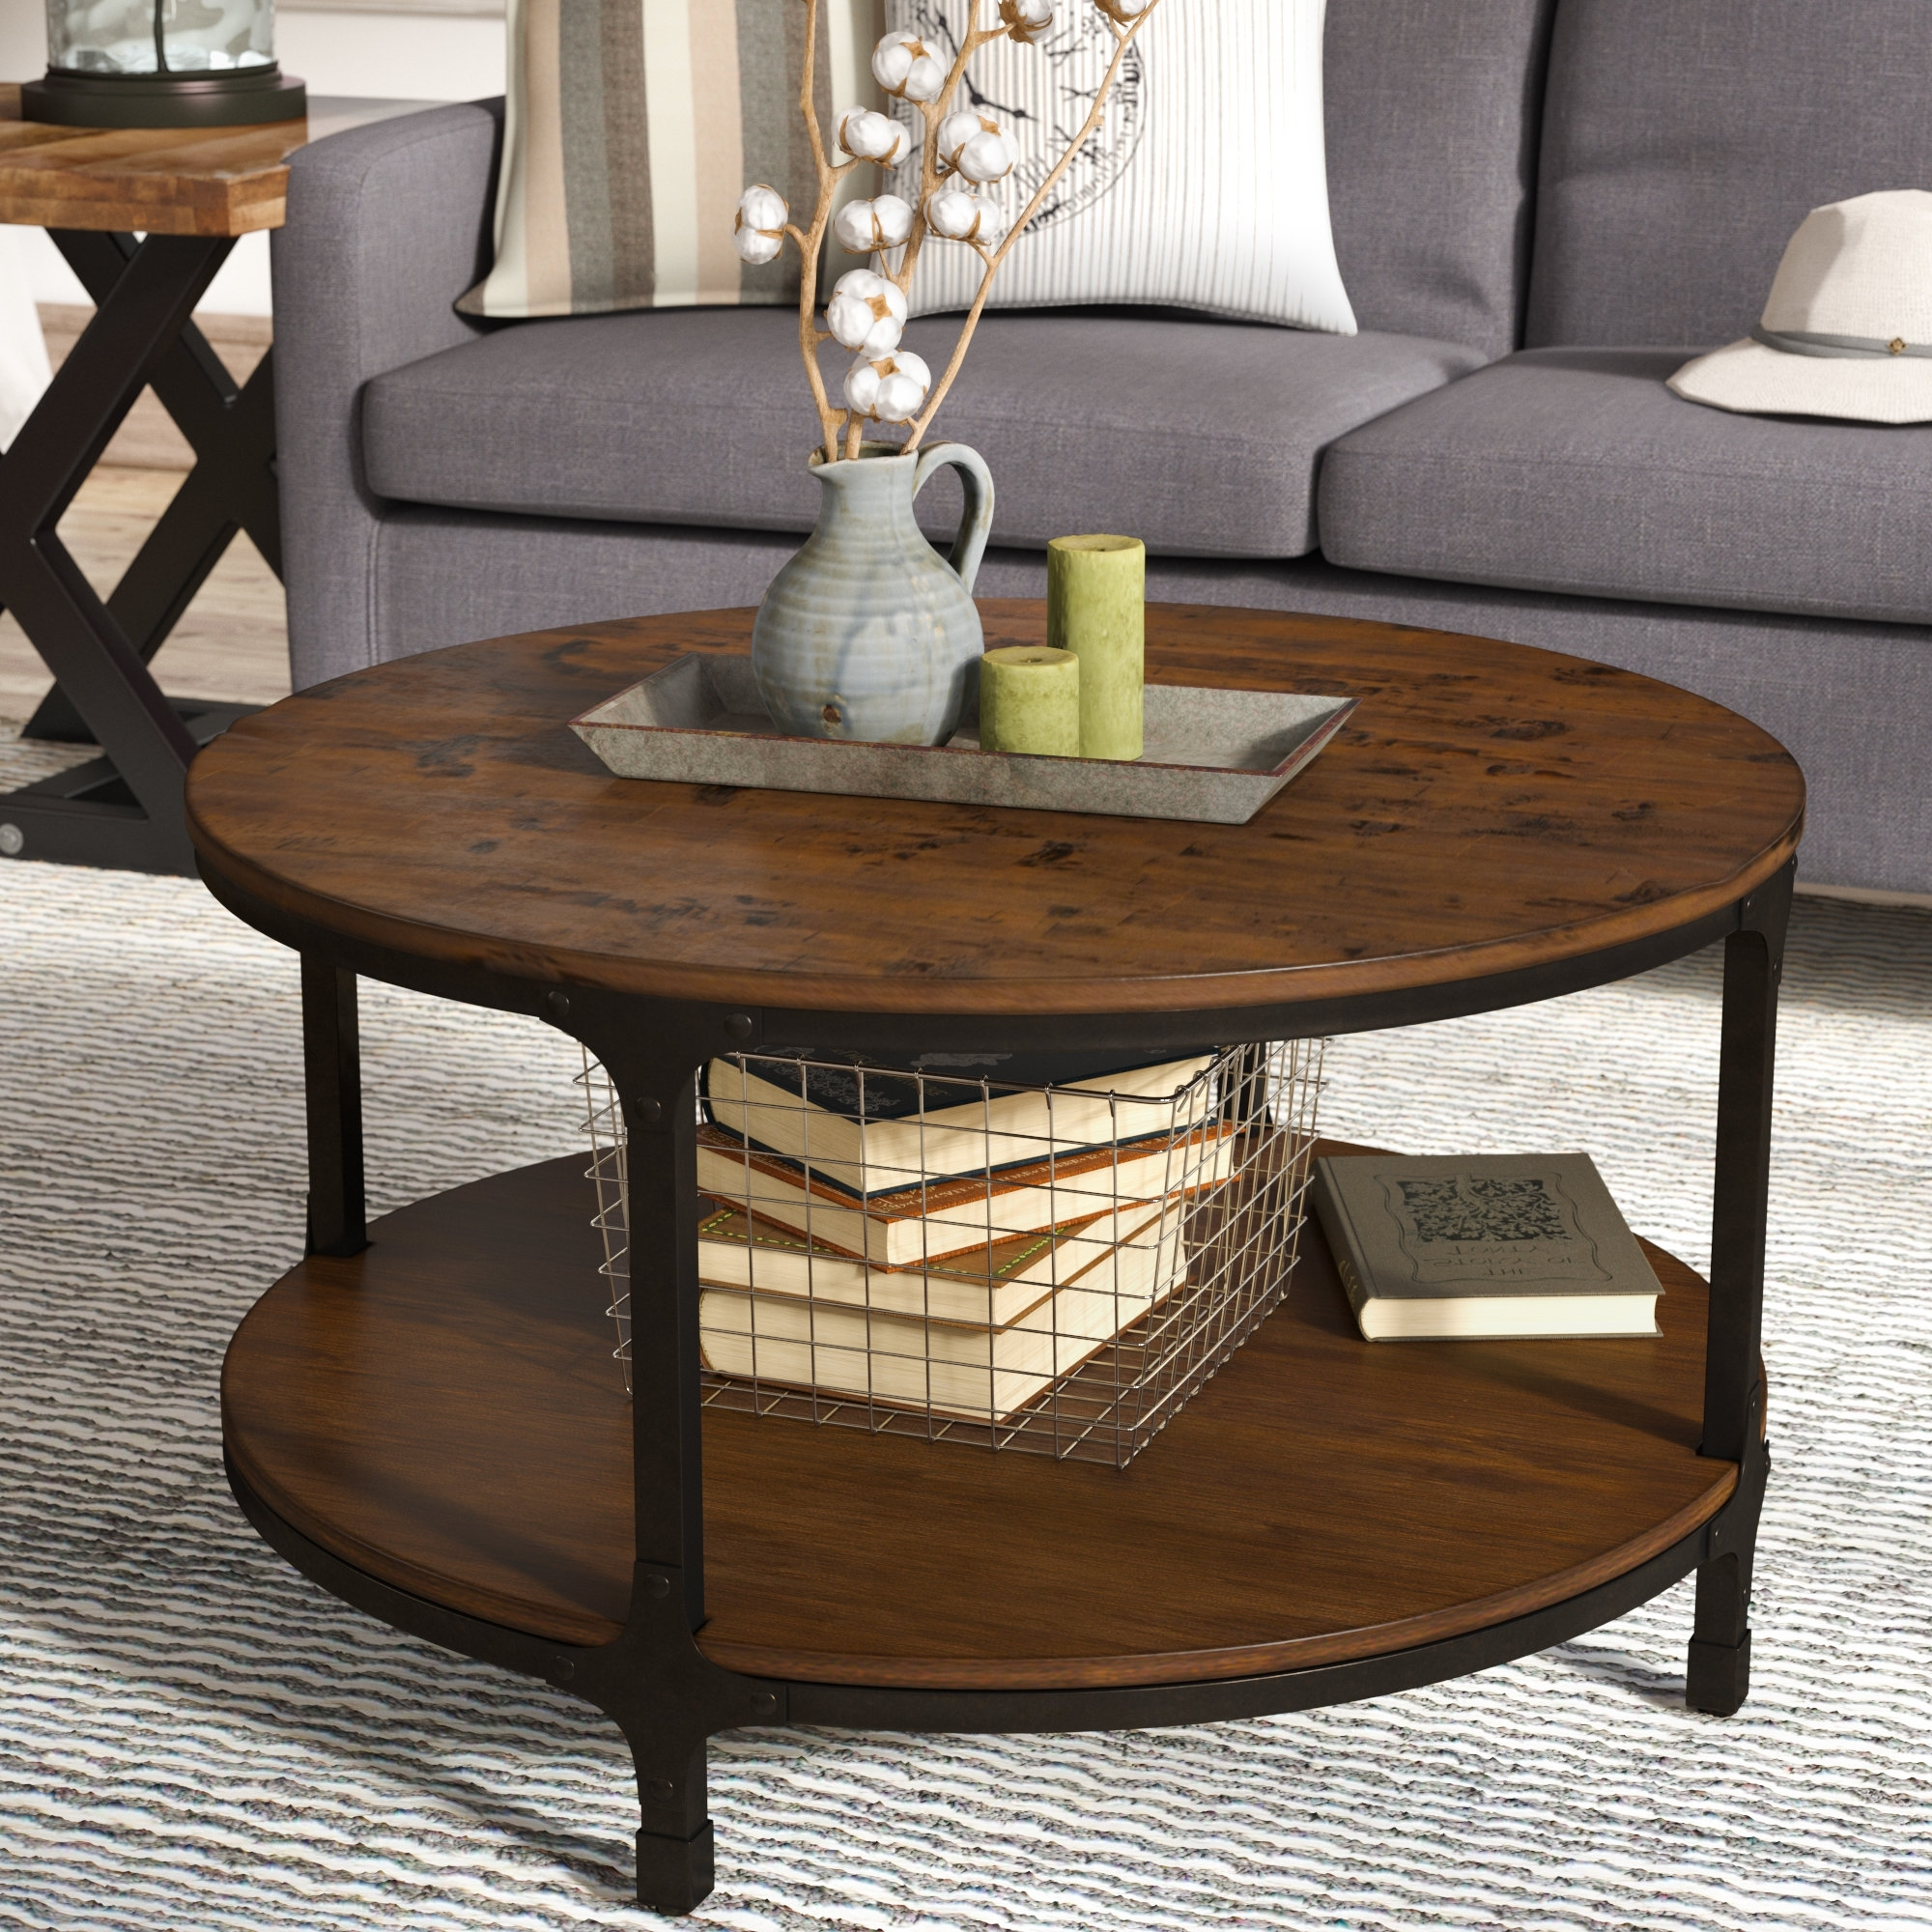 Round Coffee Tables You'll Love (View 9 of 20)